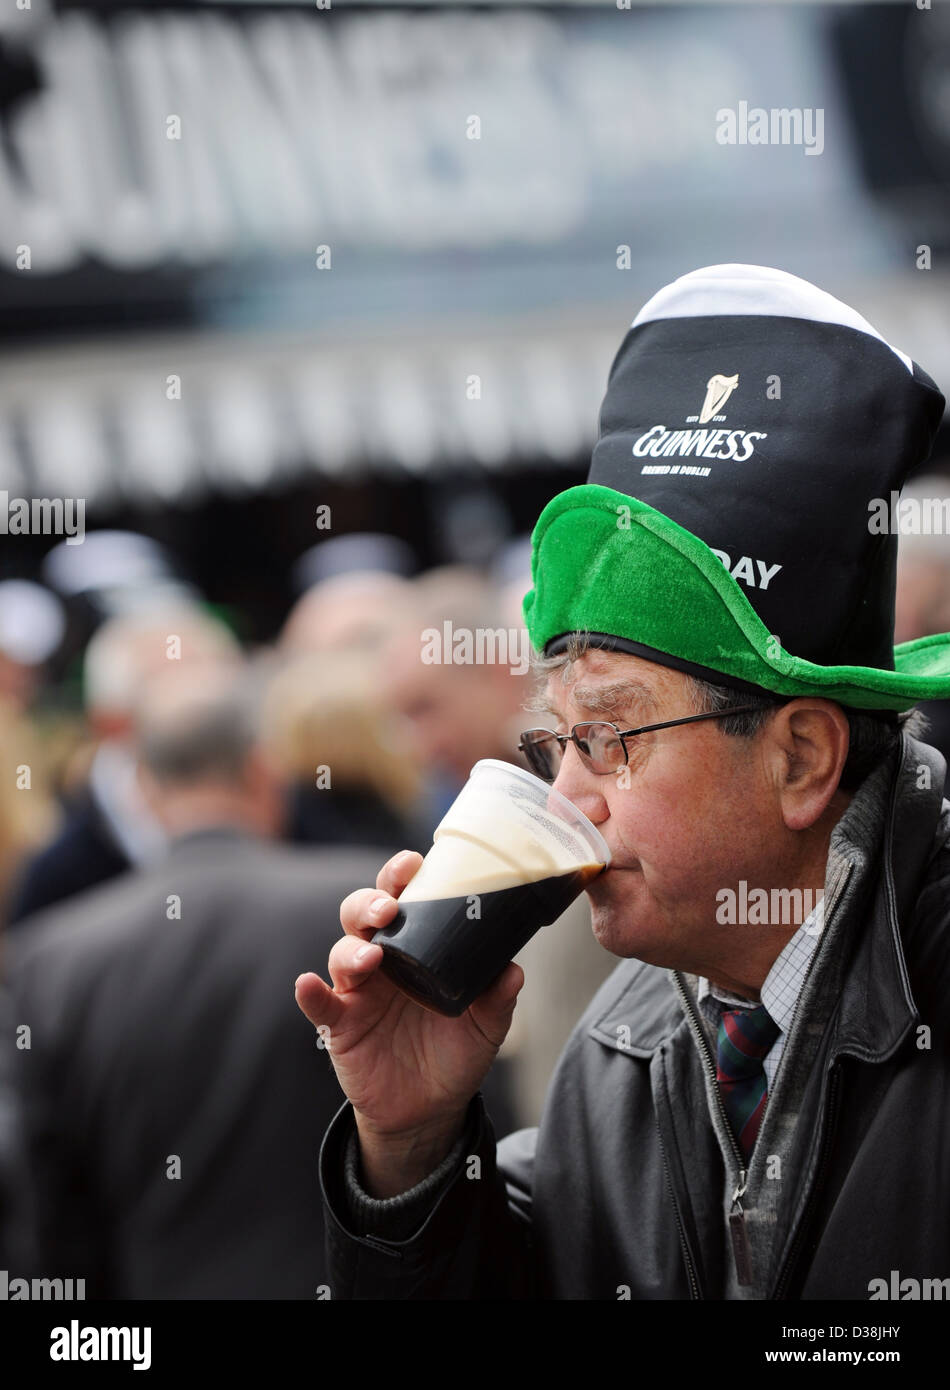 A man drinks a pint of Guinness on St. Patricks Day during the Cheltenham horse racing festival Stock Photo